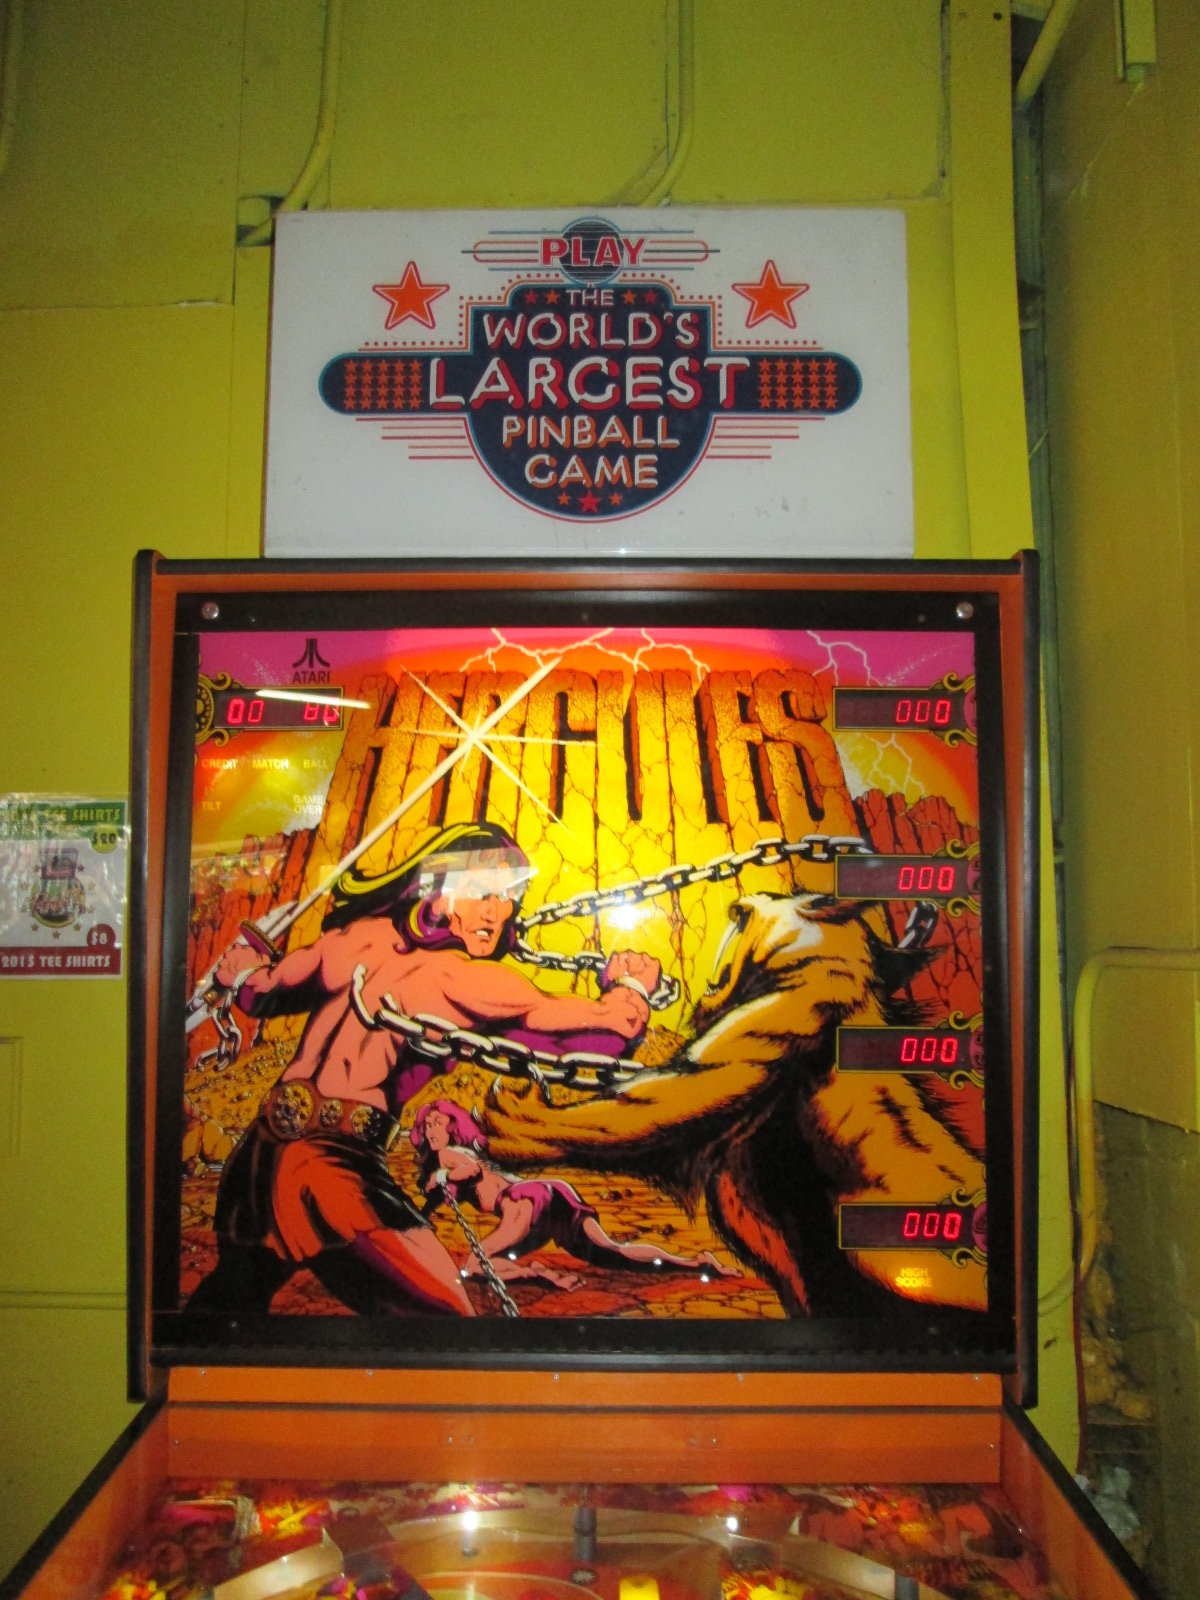 ed1475: Hercules (Pinball: 3 Balls) 131,710 points on 2016-08-25 19:43:15